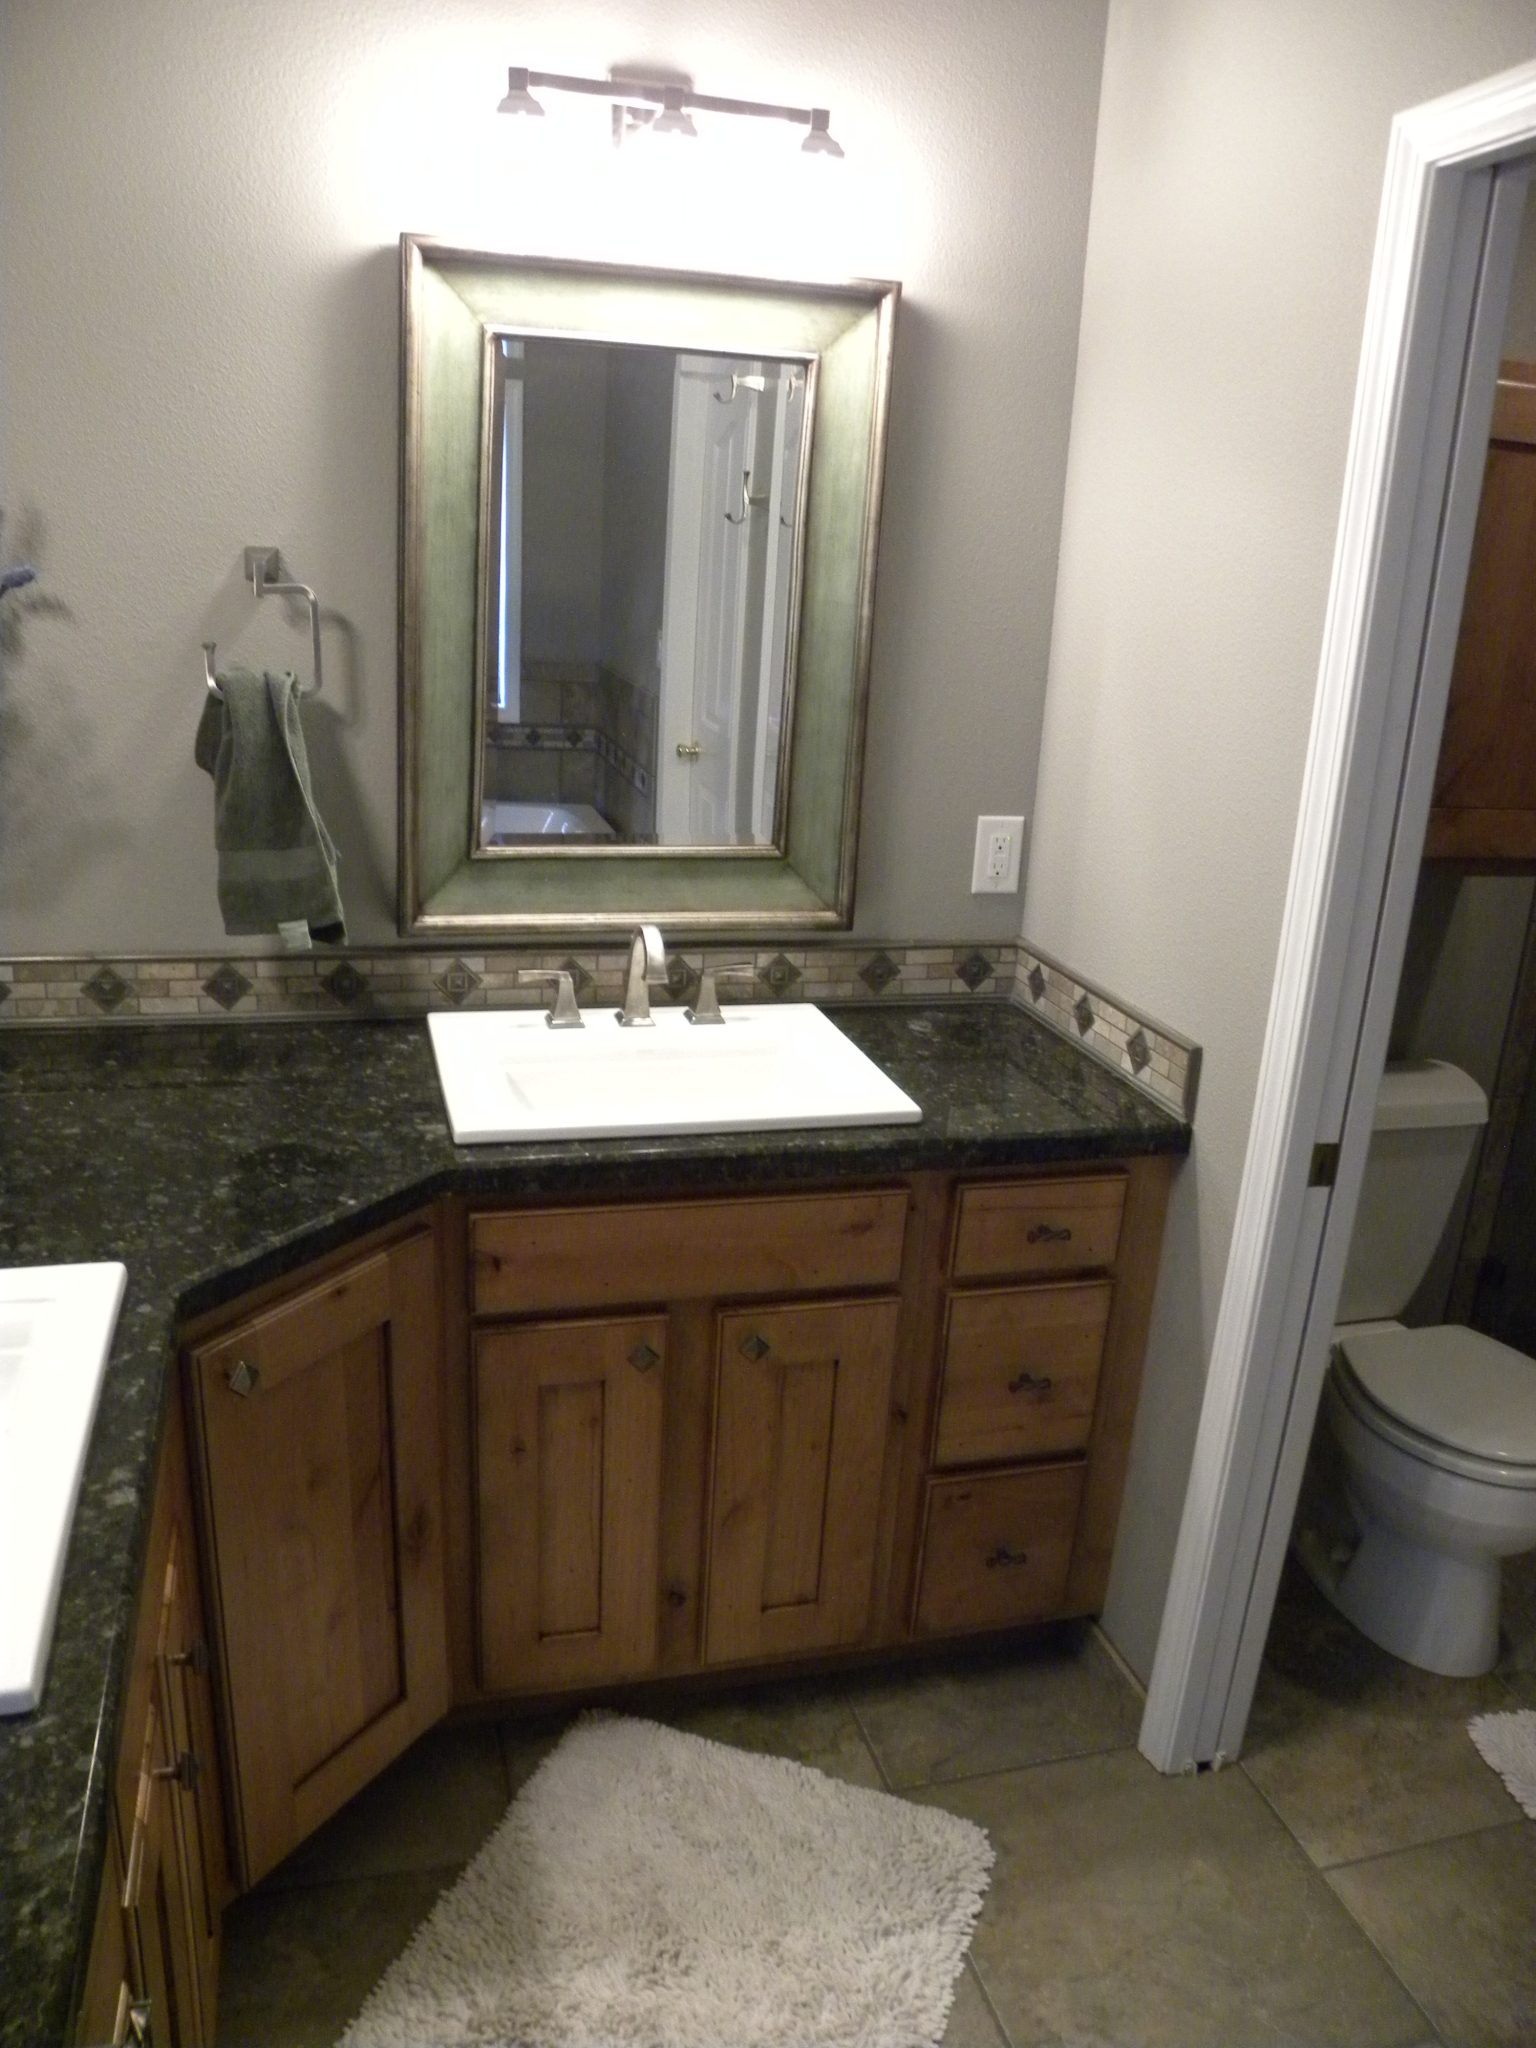 Interior shot of newly remolded bathroom with custom countertops and wood trimming